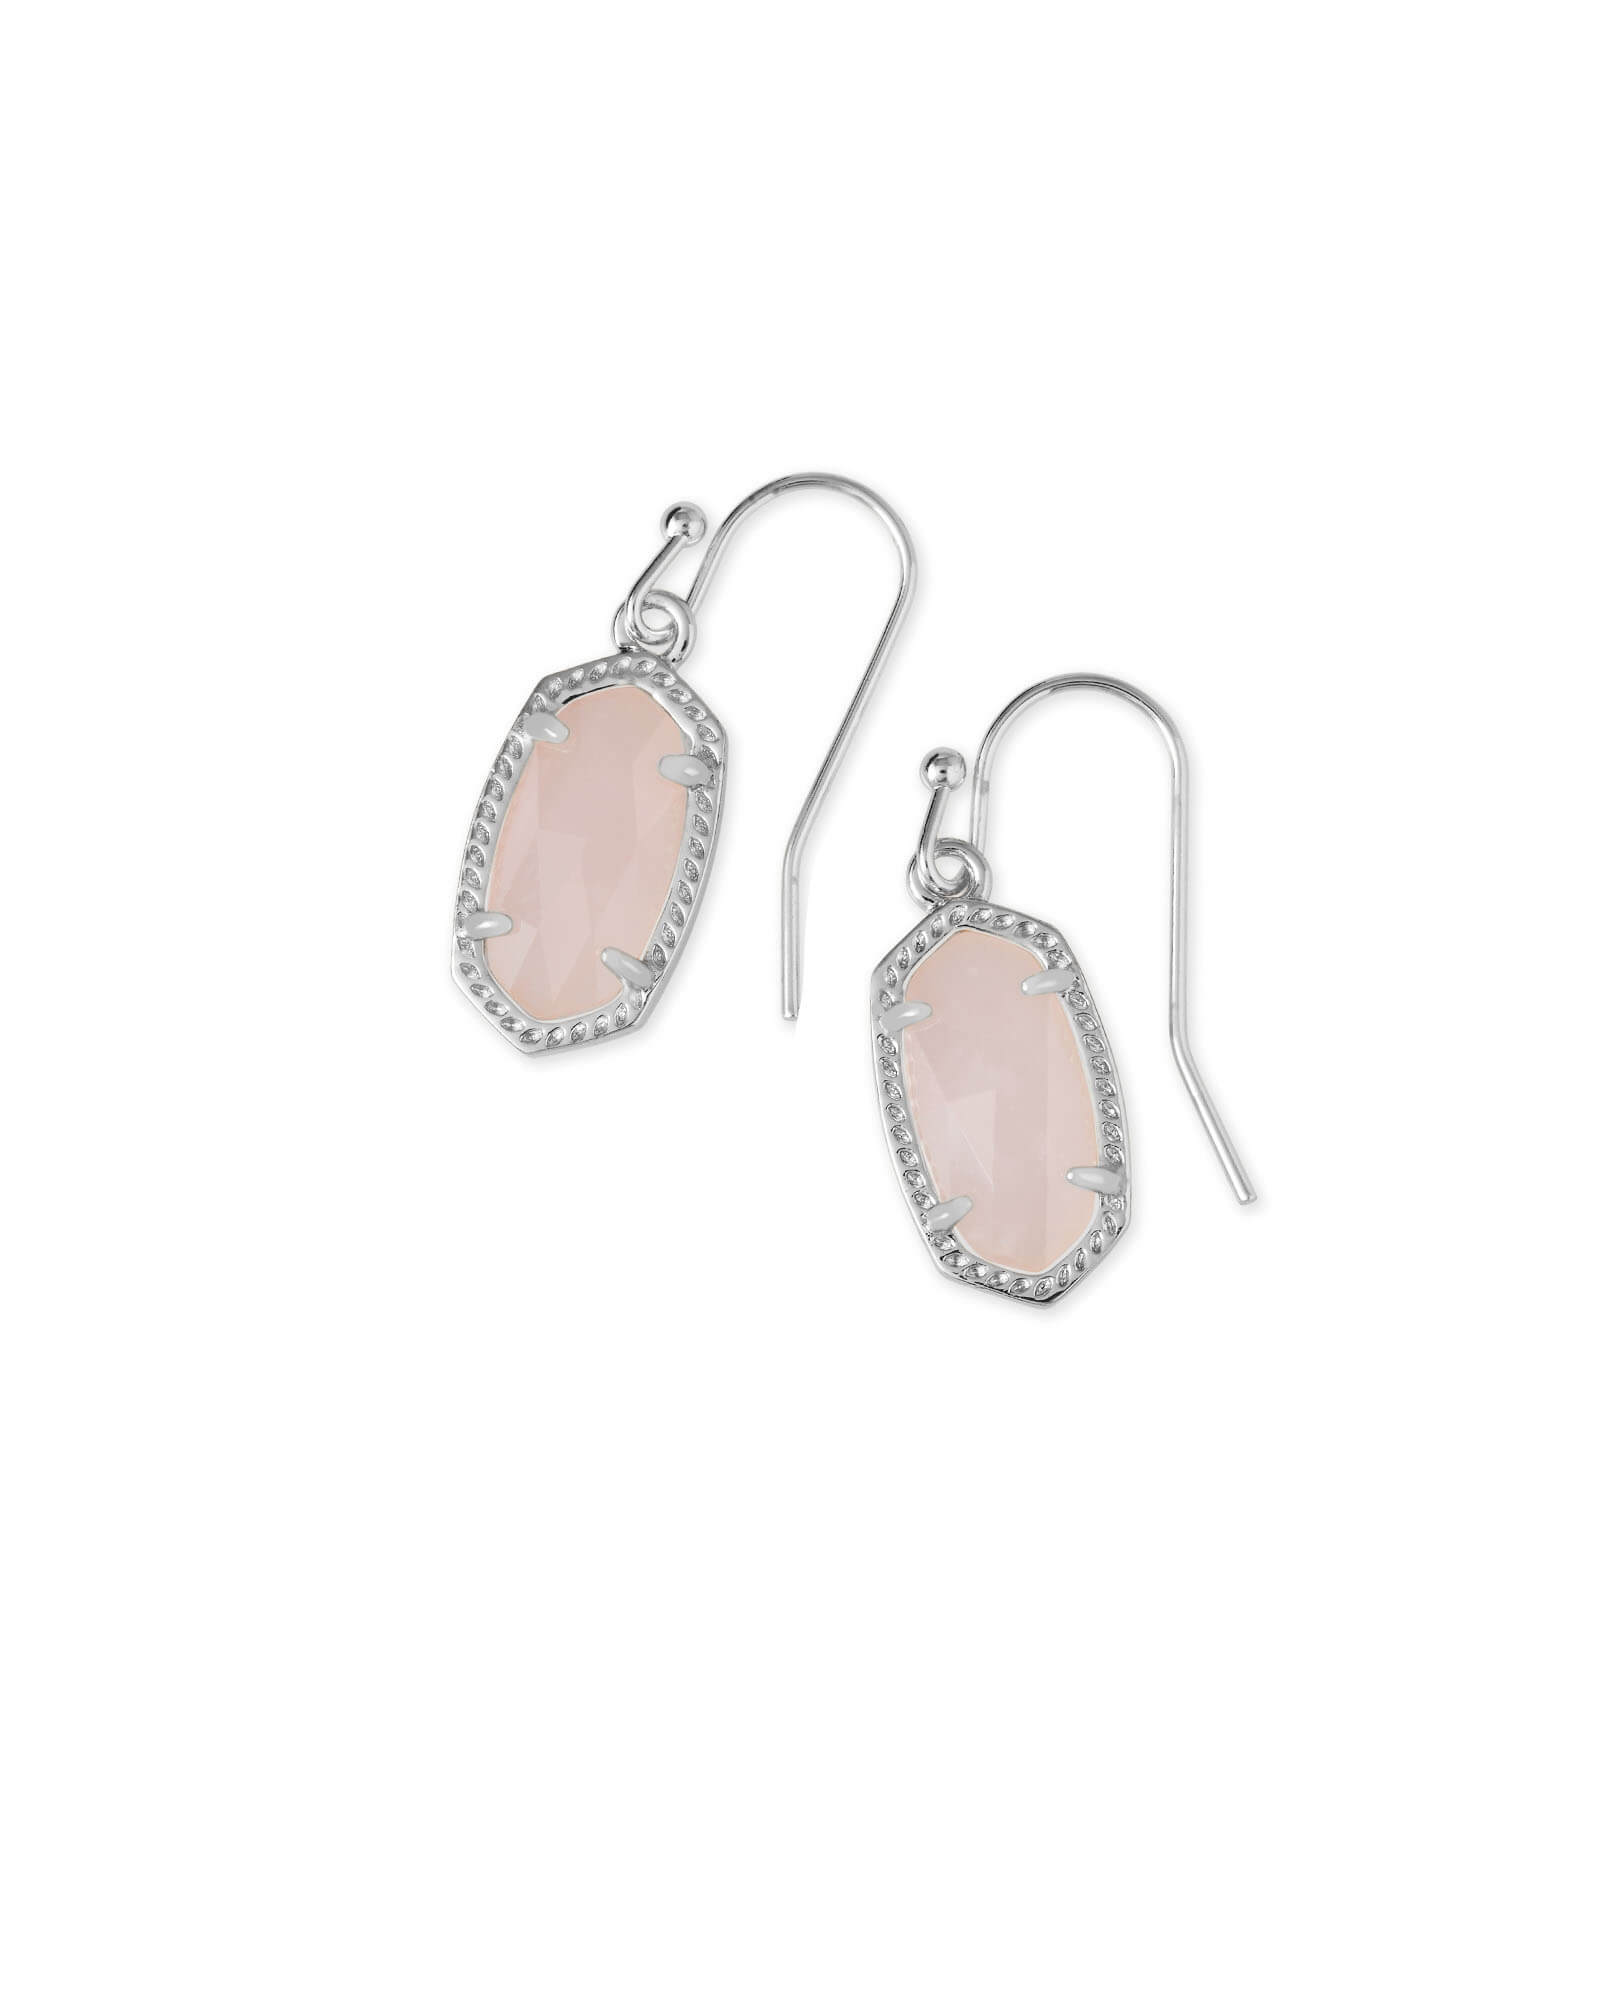 Lee Silver Drop Earrings in Rose Quartz